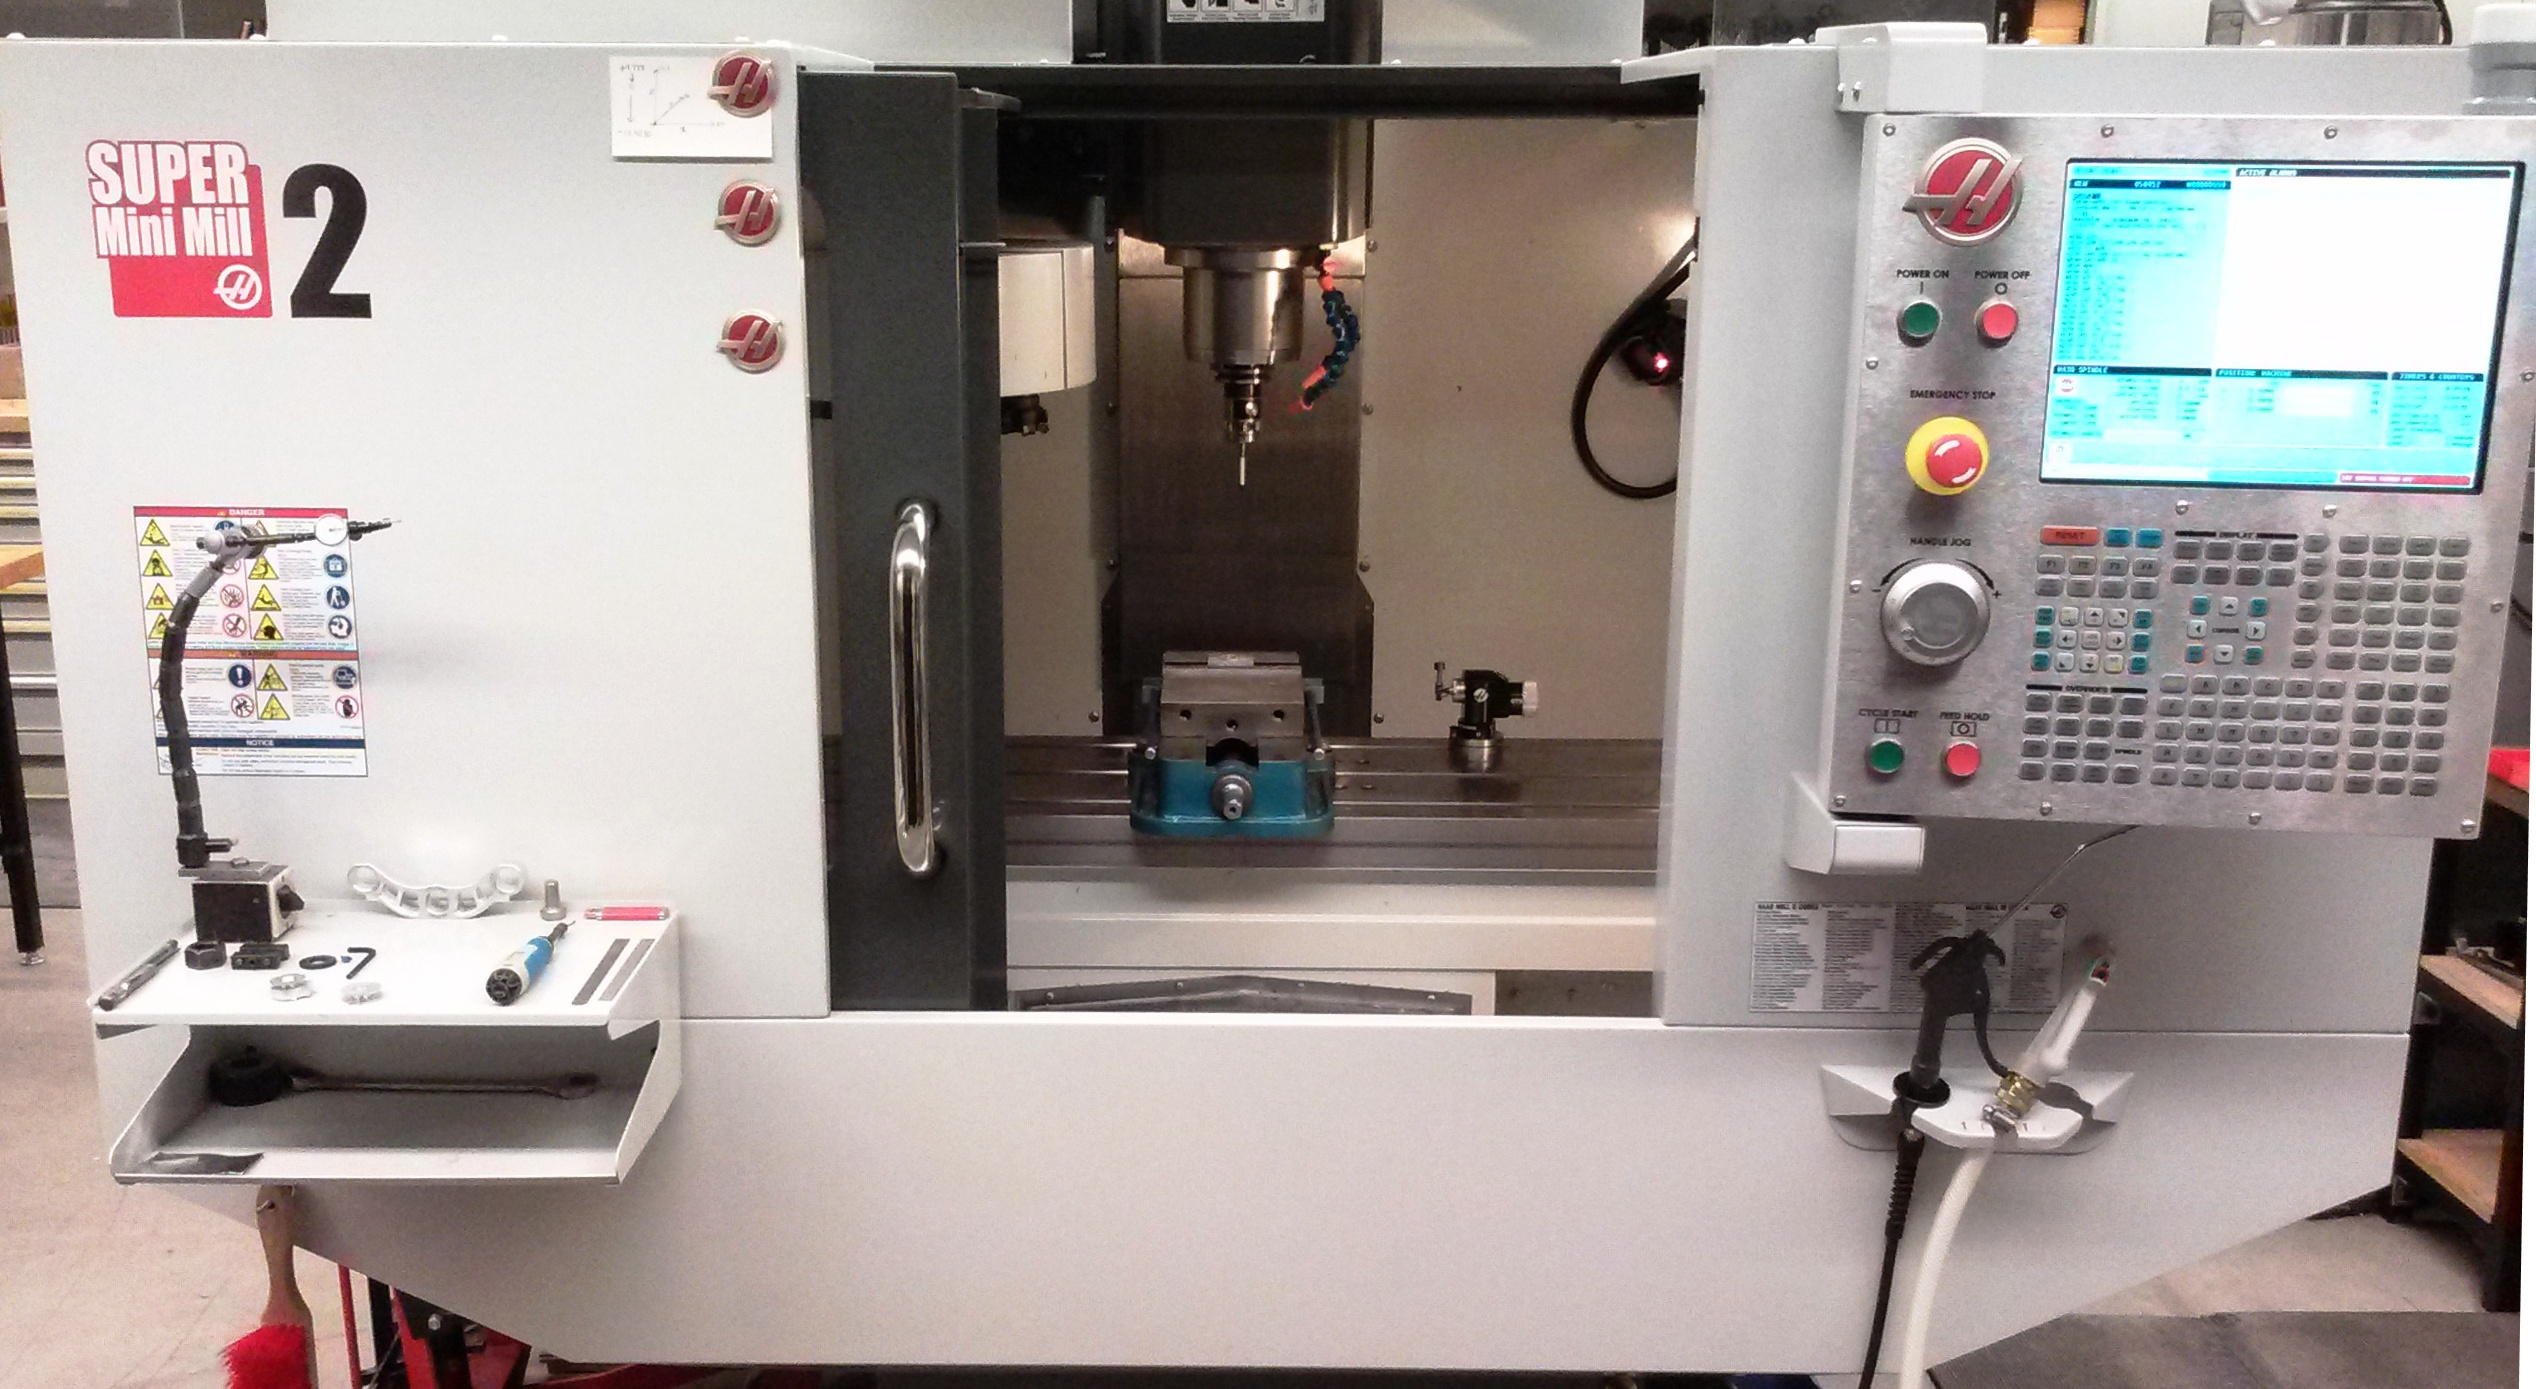 The Haas Super Mini Mill 2 CNC milling machine is capable of machining most plastics and metals with tolerances well within 0.001